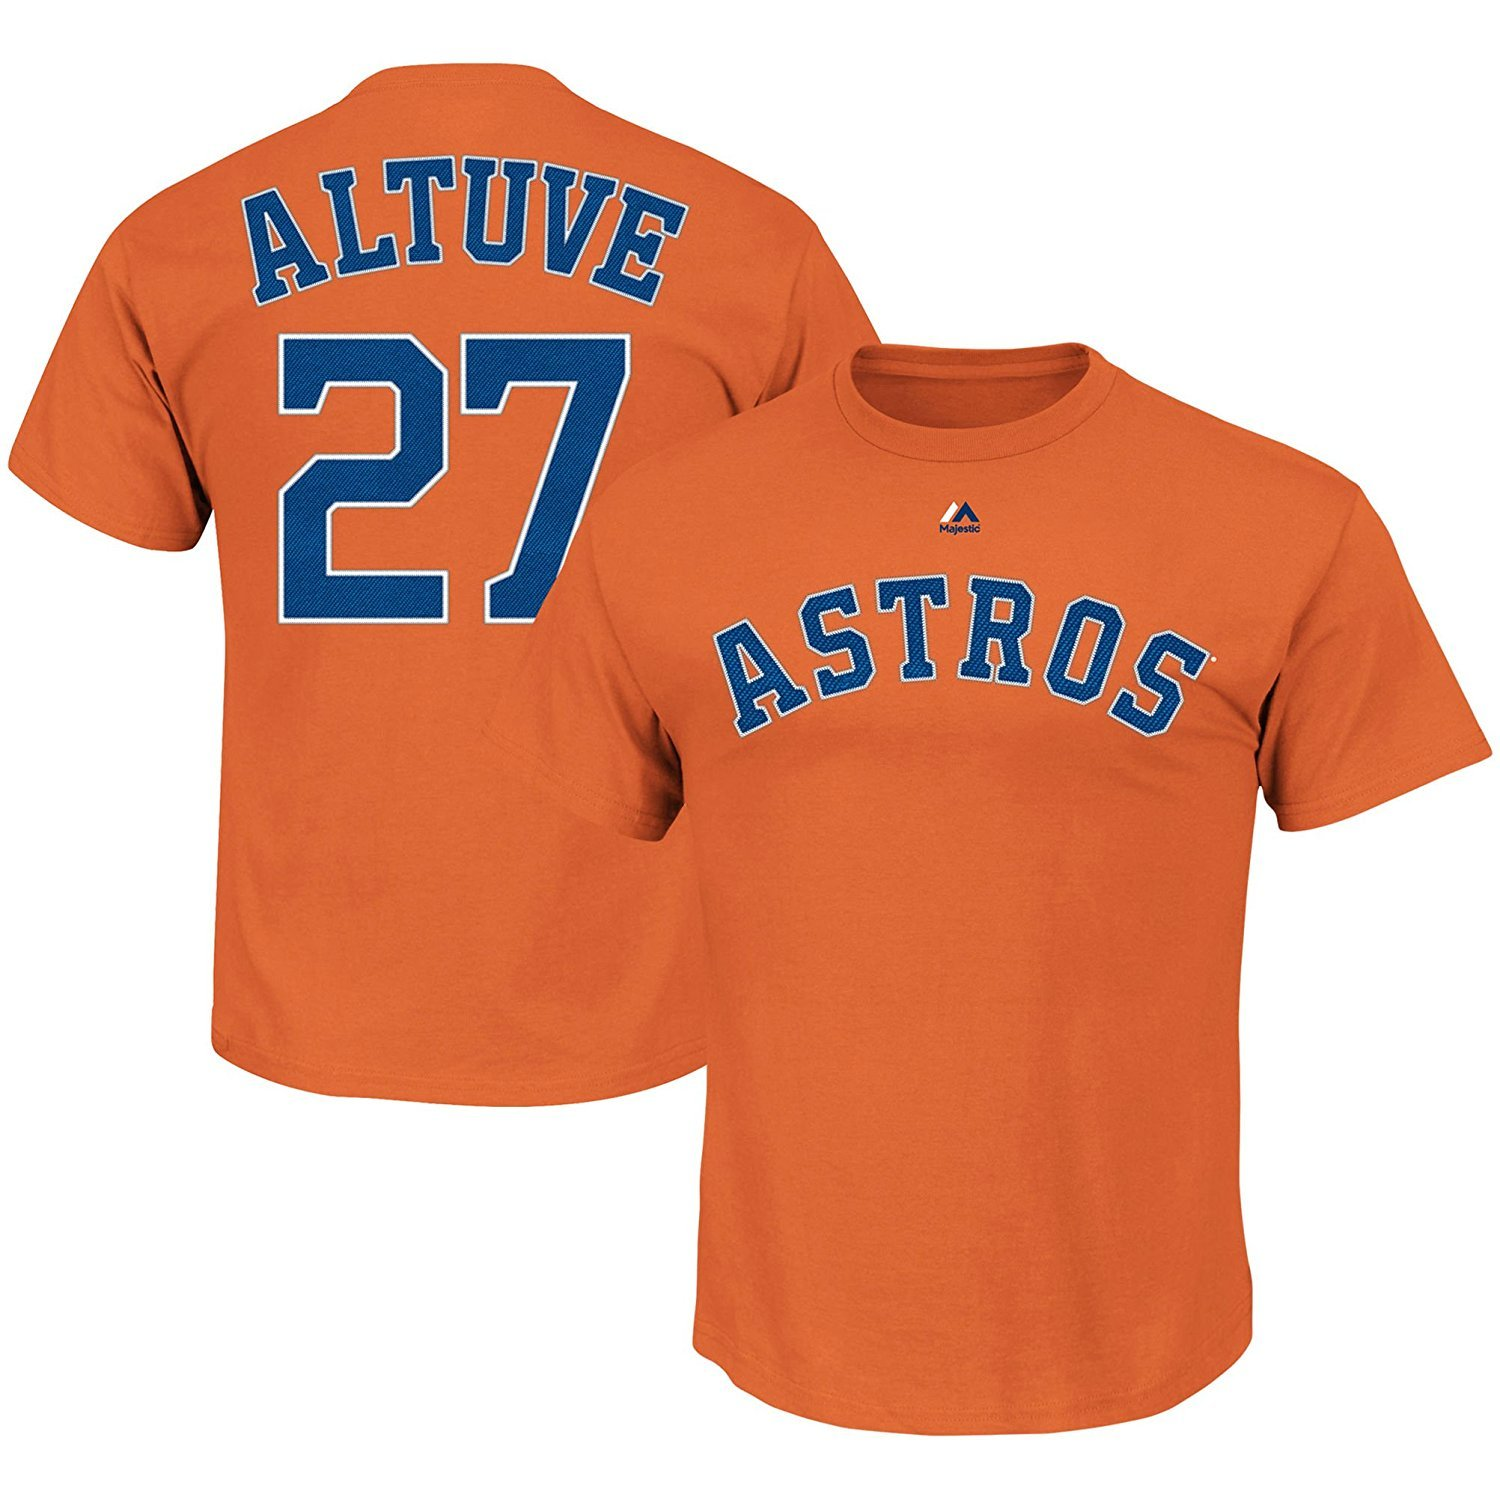 official photos 605bf 7aa3f OuterStuff Jose Altuve Houston Astros #27 Orange Youth Name and Number Shirt